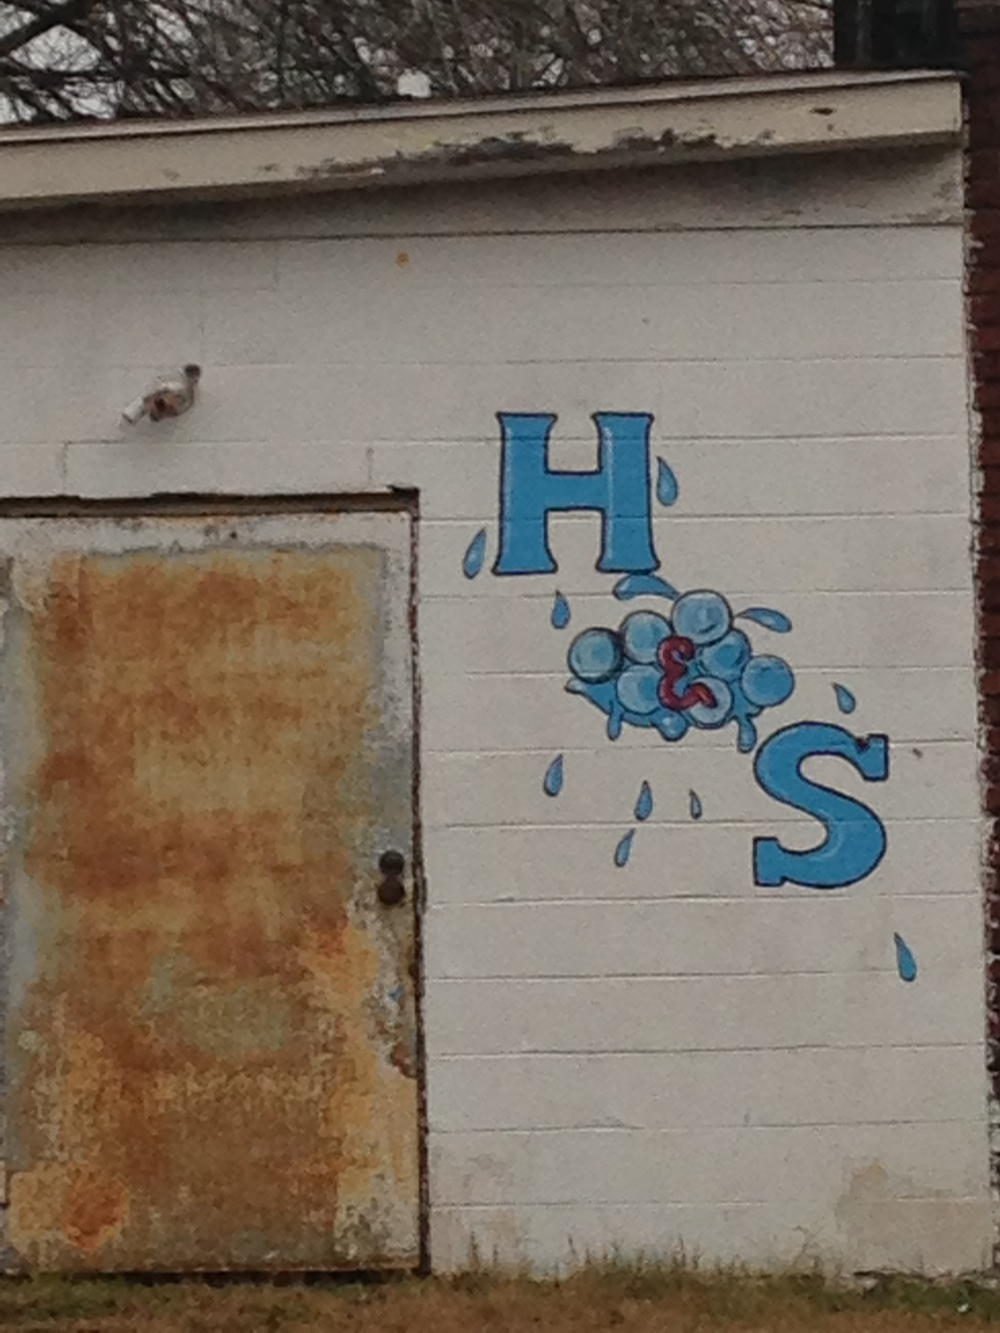 H & S car wash, Louisville Road, Savannah, 2015